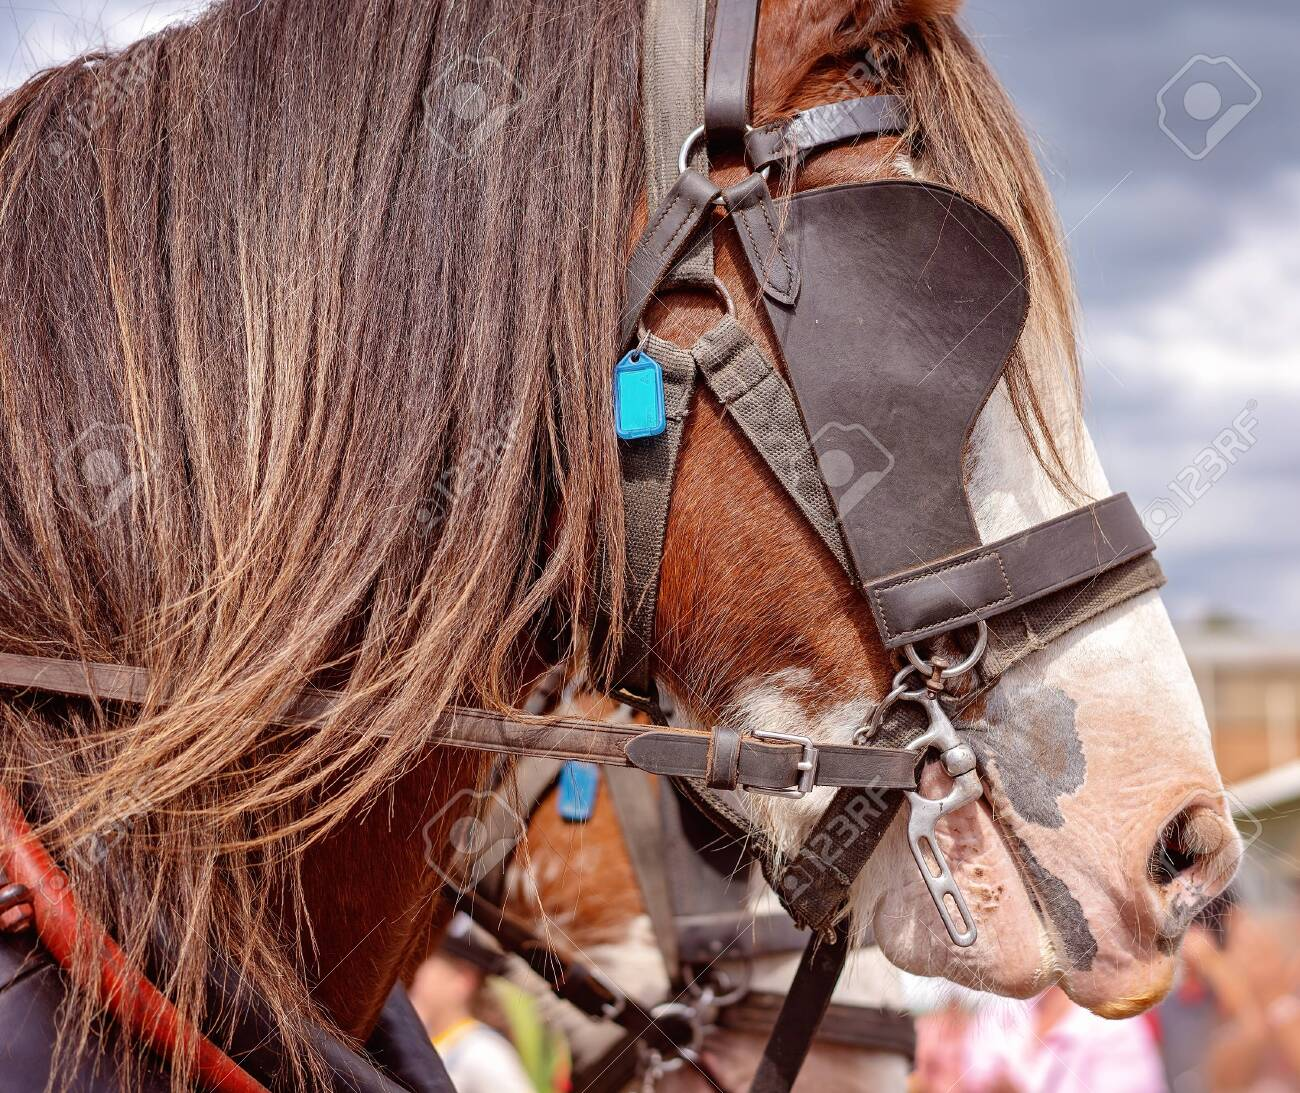 A Draft Horse In Harness Pulling A Wagon In A Street Procession Stock Photo Picture And Royalty Free Image Image 120672828